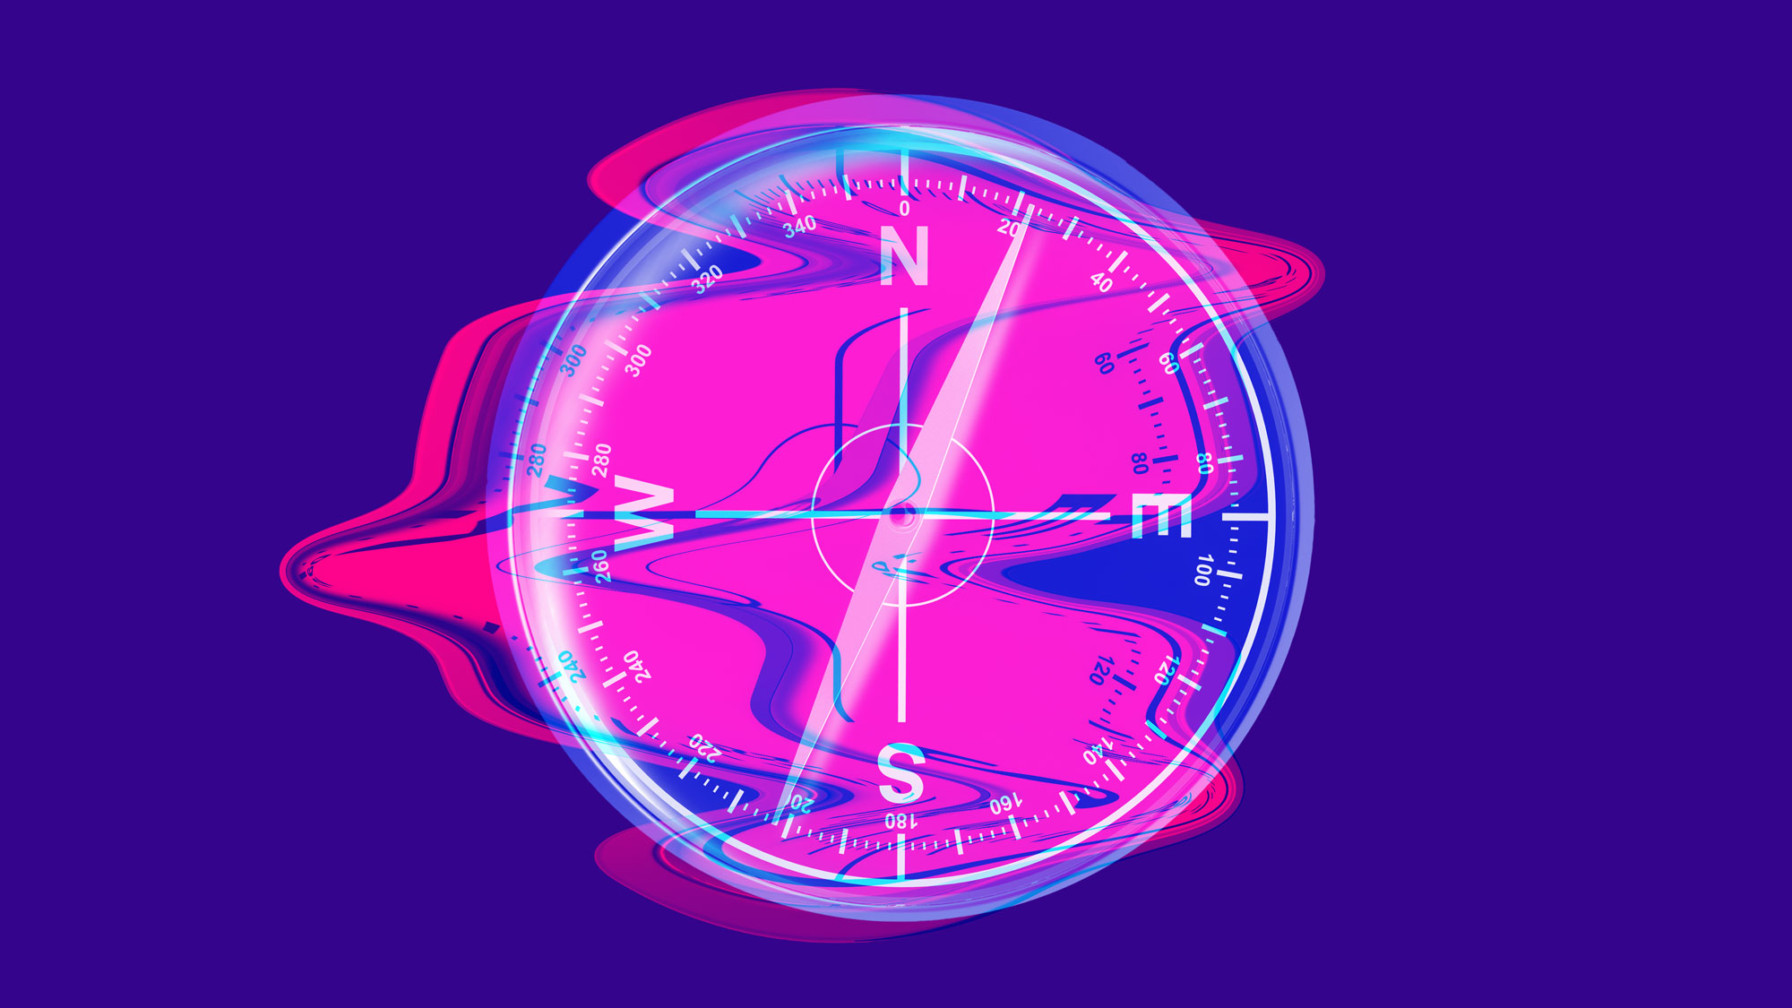 Leader's compass